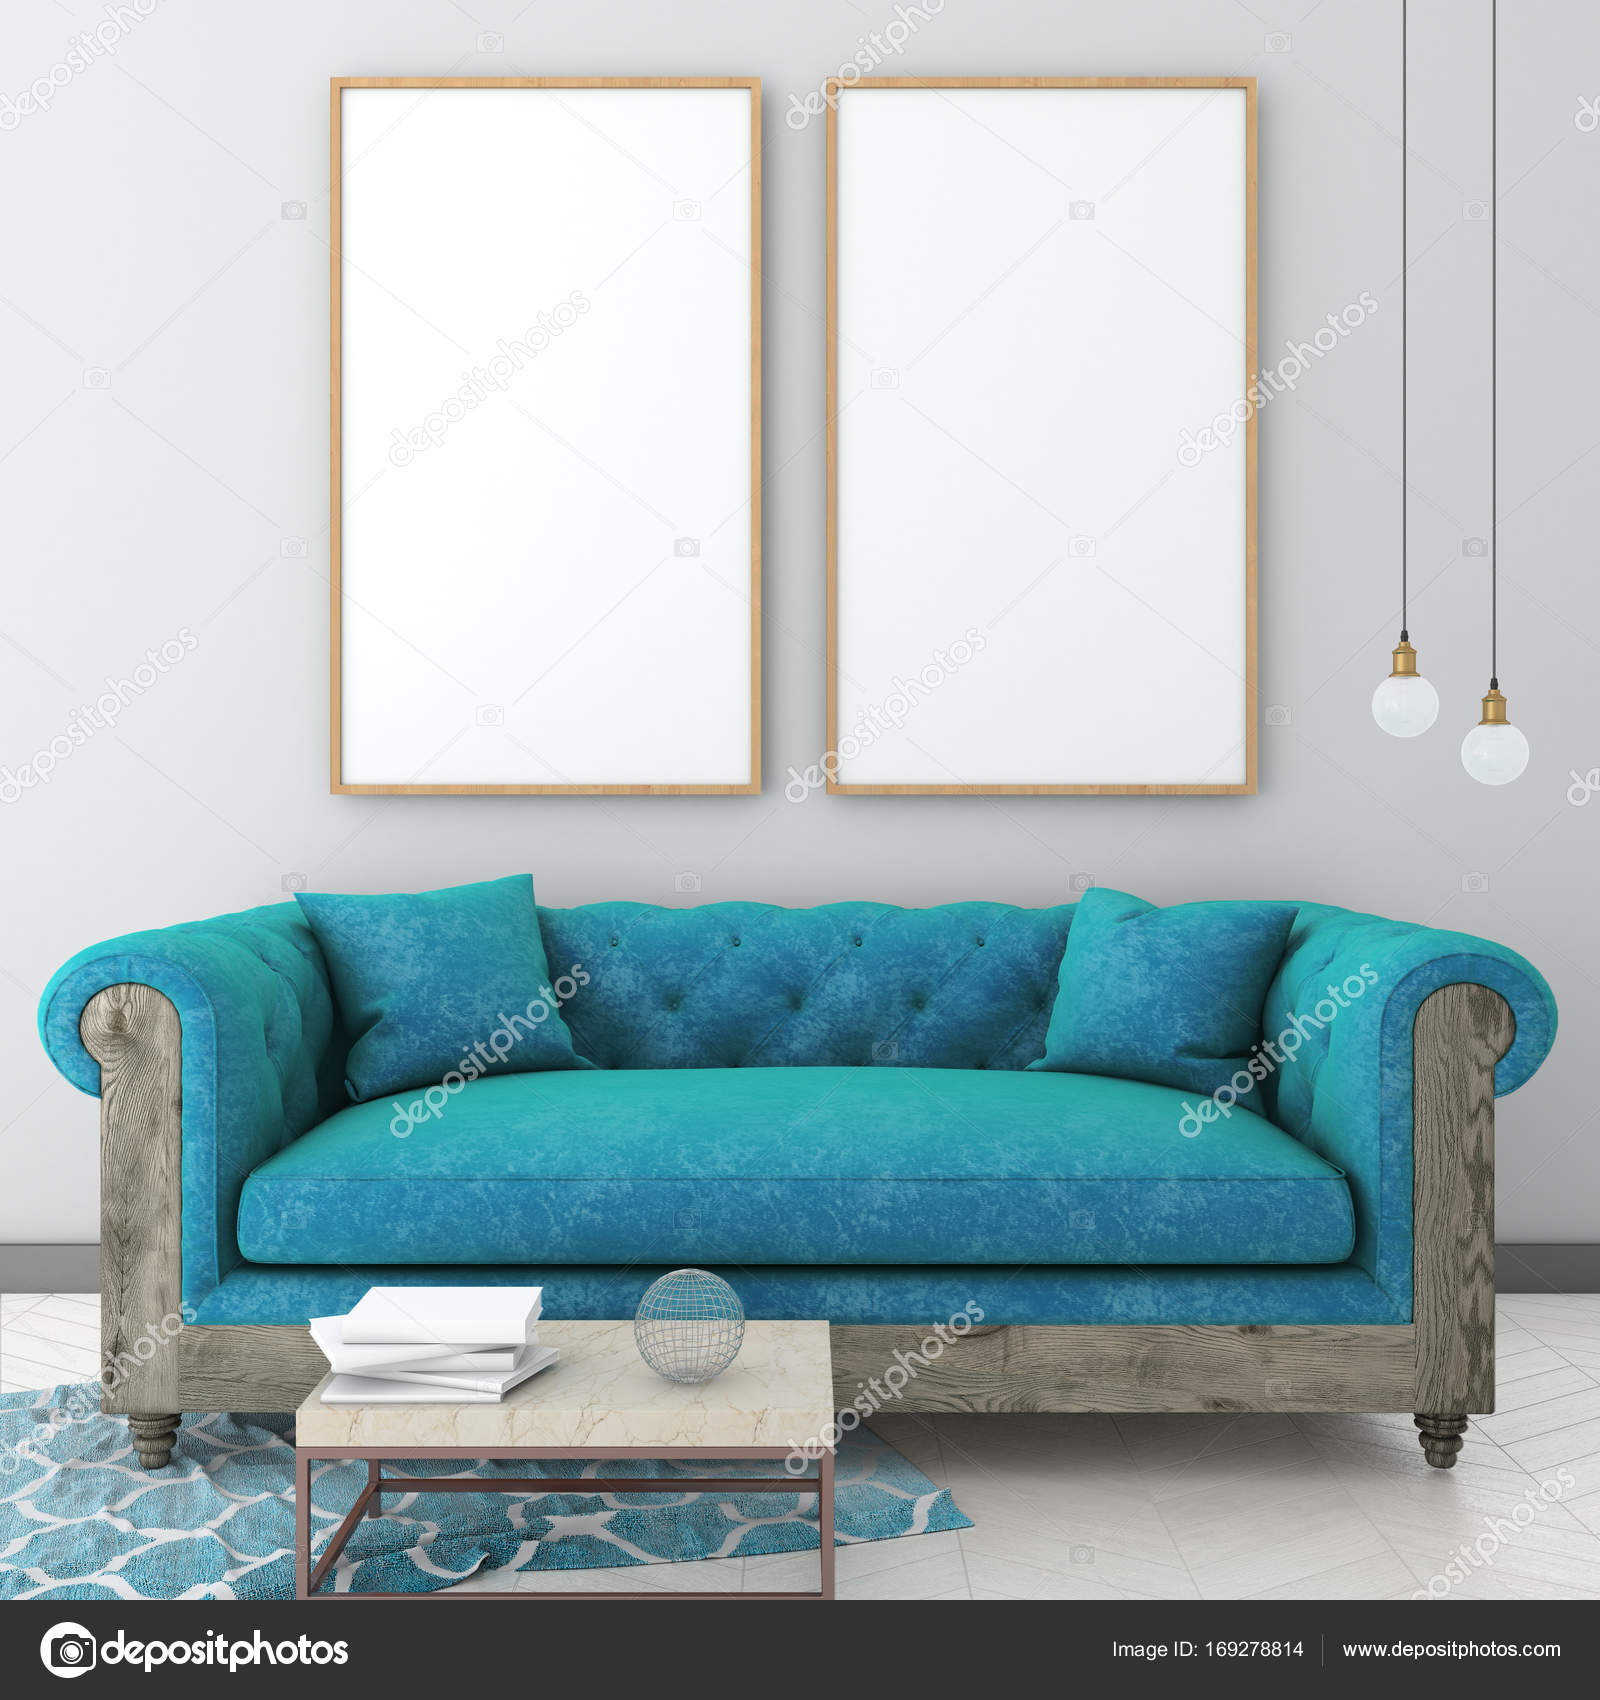 Phenomenal Mock Up Poster Frame In Light Interior Background With Blue Beatyapartments Chair Design Images Beatyapartmentscom